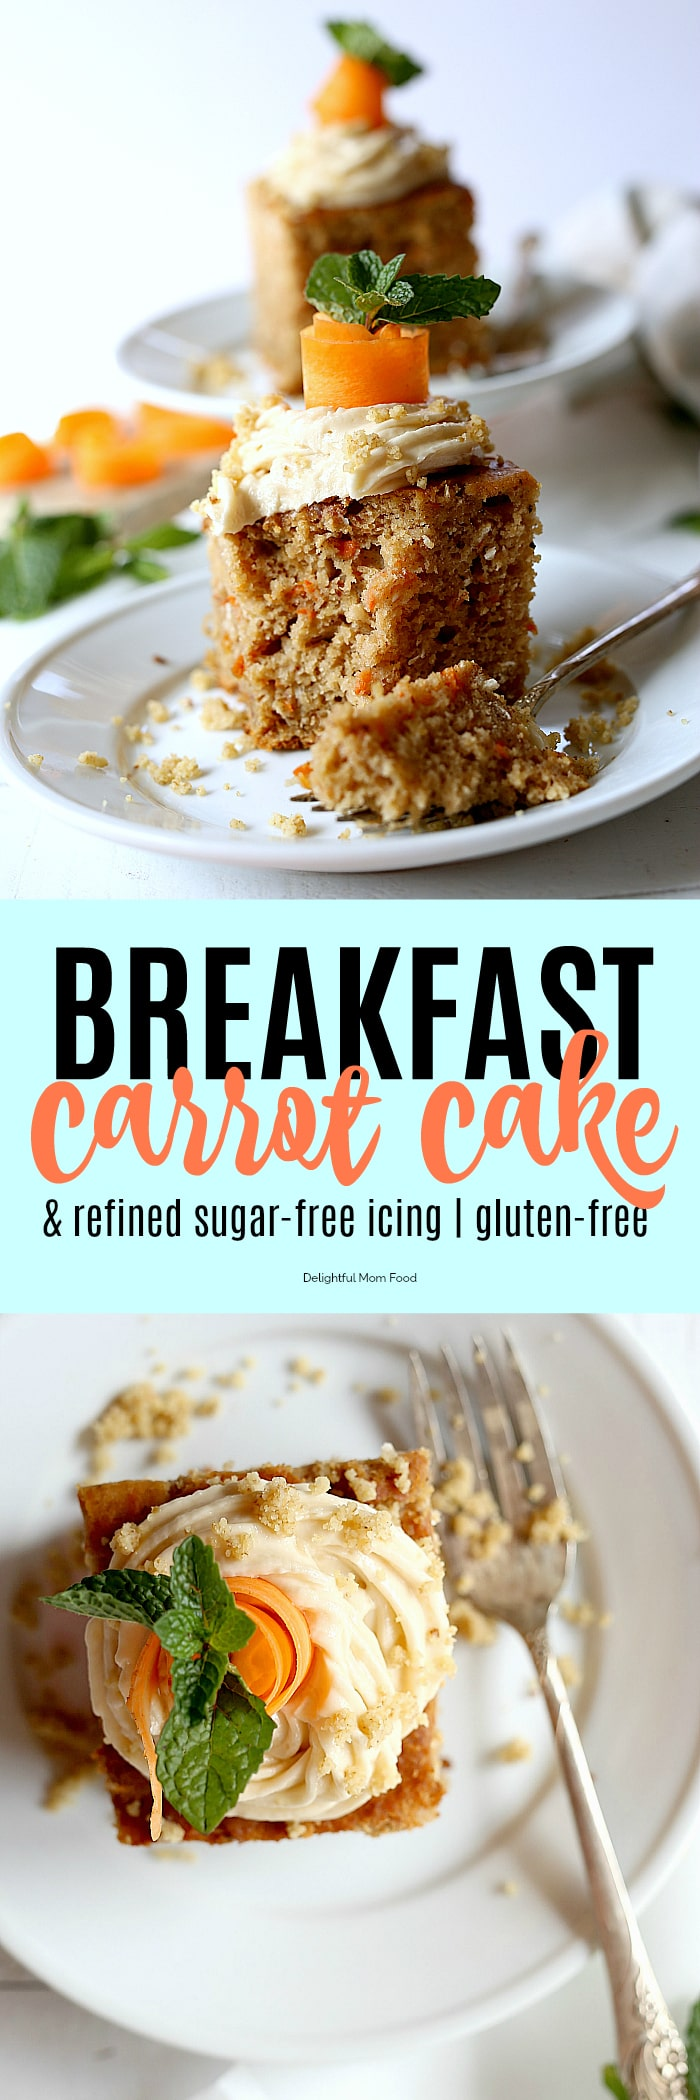 A healthy and easy carrot cake recipe that is so delicious, gluten-free, made with oats and free of refined sugars! It is healthy enough to start your day for breakfast and is topped with buttery refined sugar-free icing made naturally with maple syrup and tapioca flour! #easy #healthy #glutenfree #carrotcake #recipe #oats #refinedsugarfree #icing #Easter #dessert #breakfast | delightfulmomfood.com